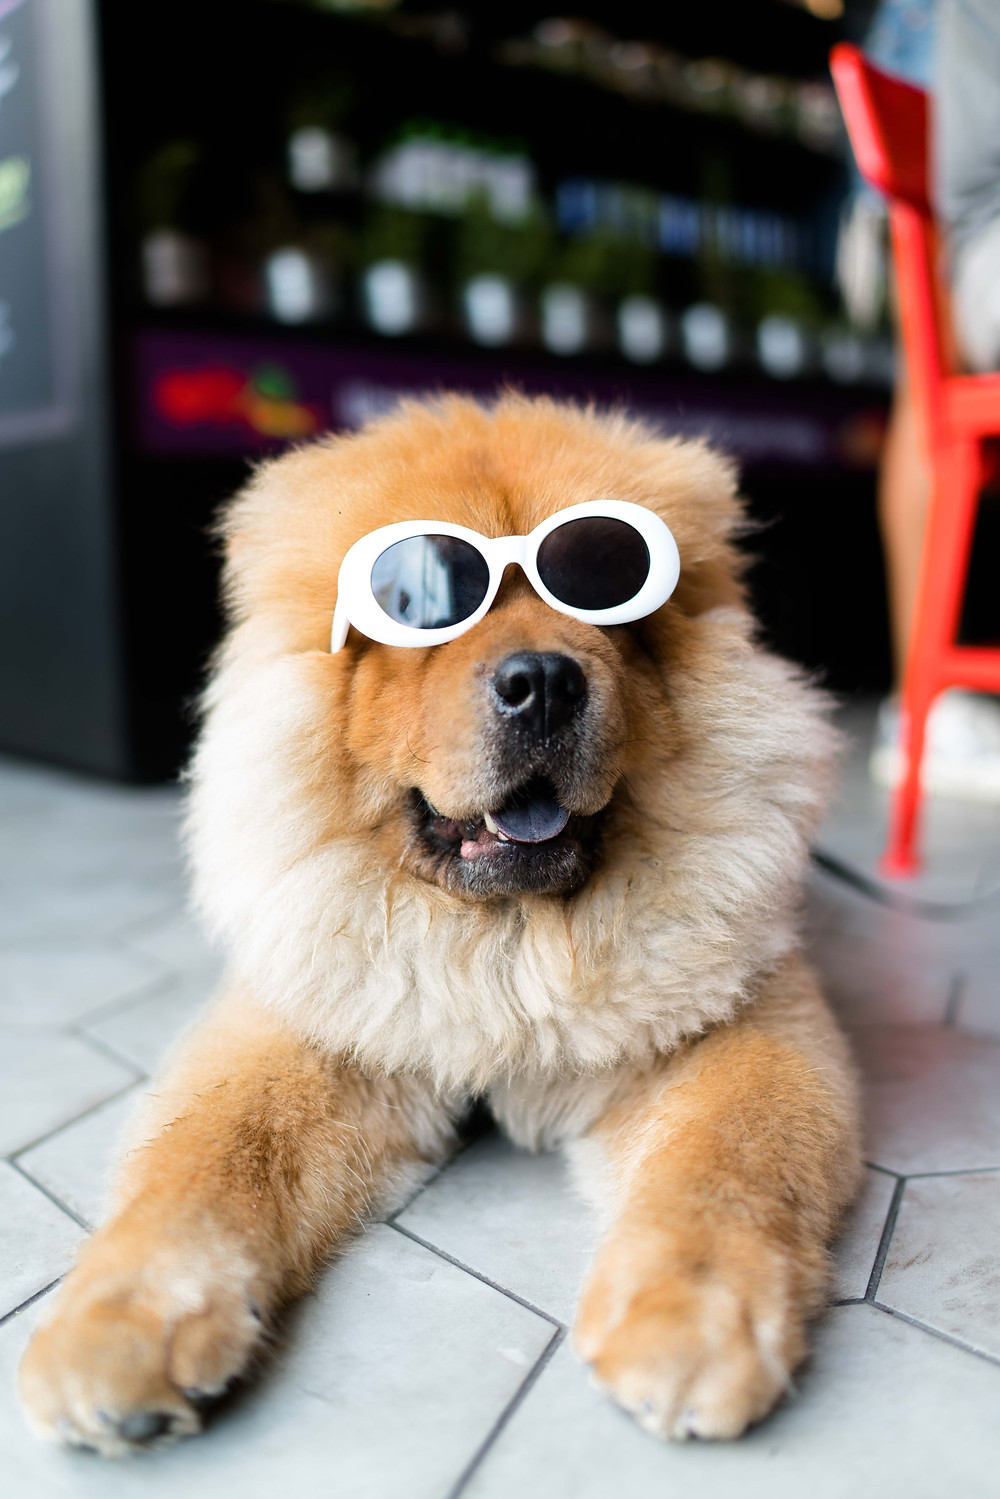 Ginger-haired dog wearing sunglasses.